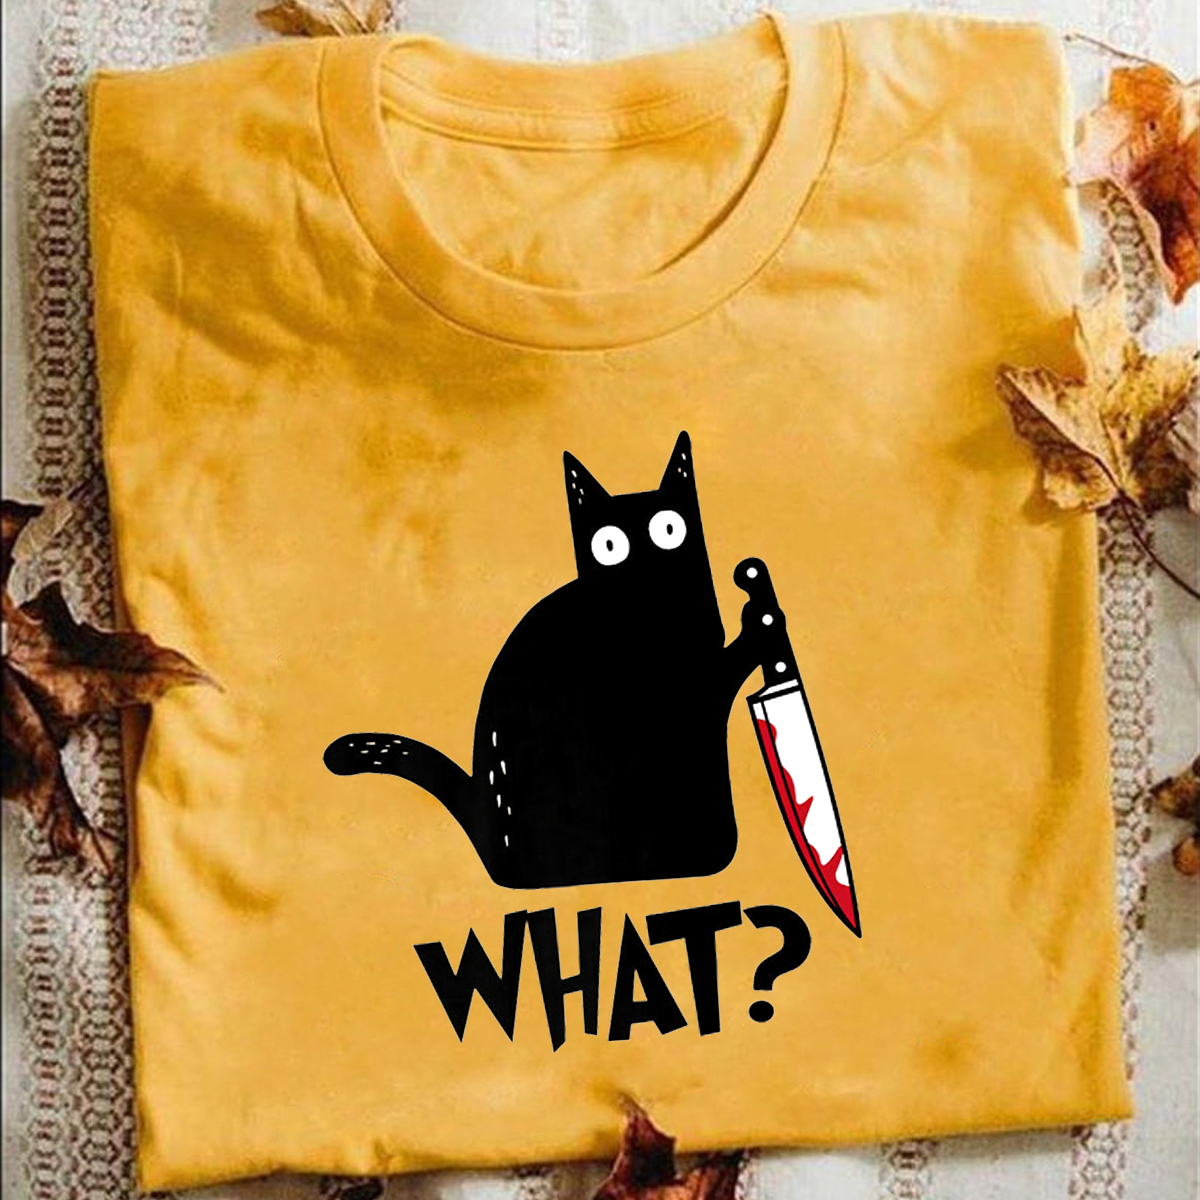 Cat What T Shirt Murderous Cat With Knife Funny Halloween Gift T Shirt Unisex Cotton T shirts for men and women